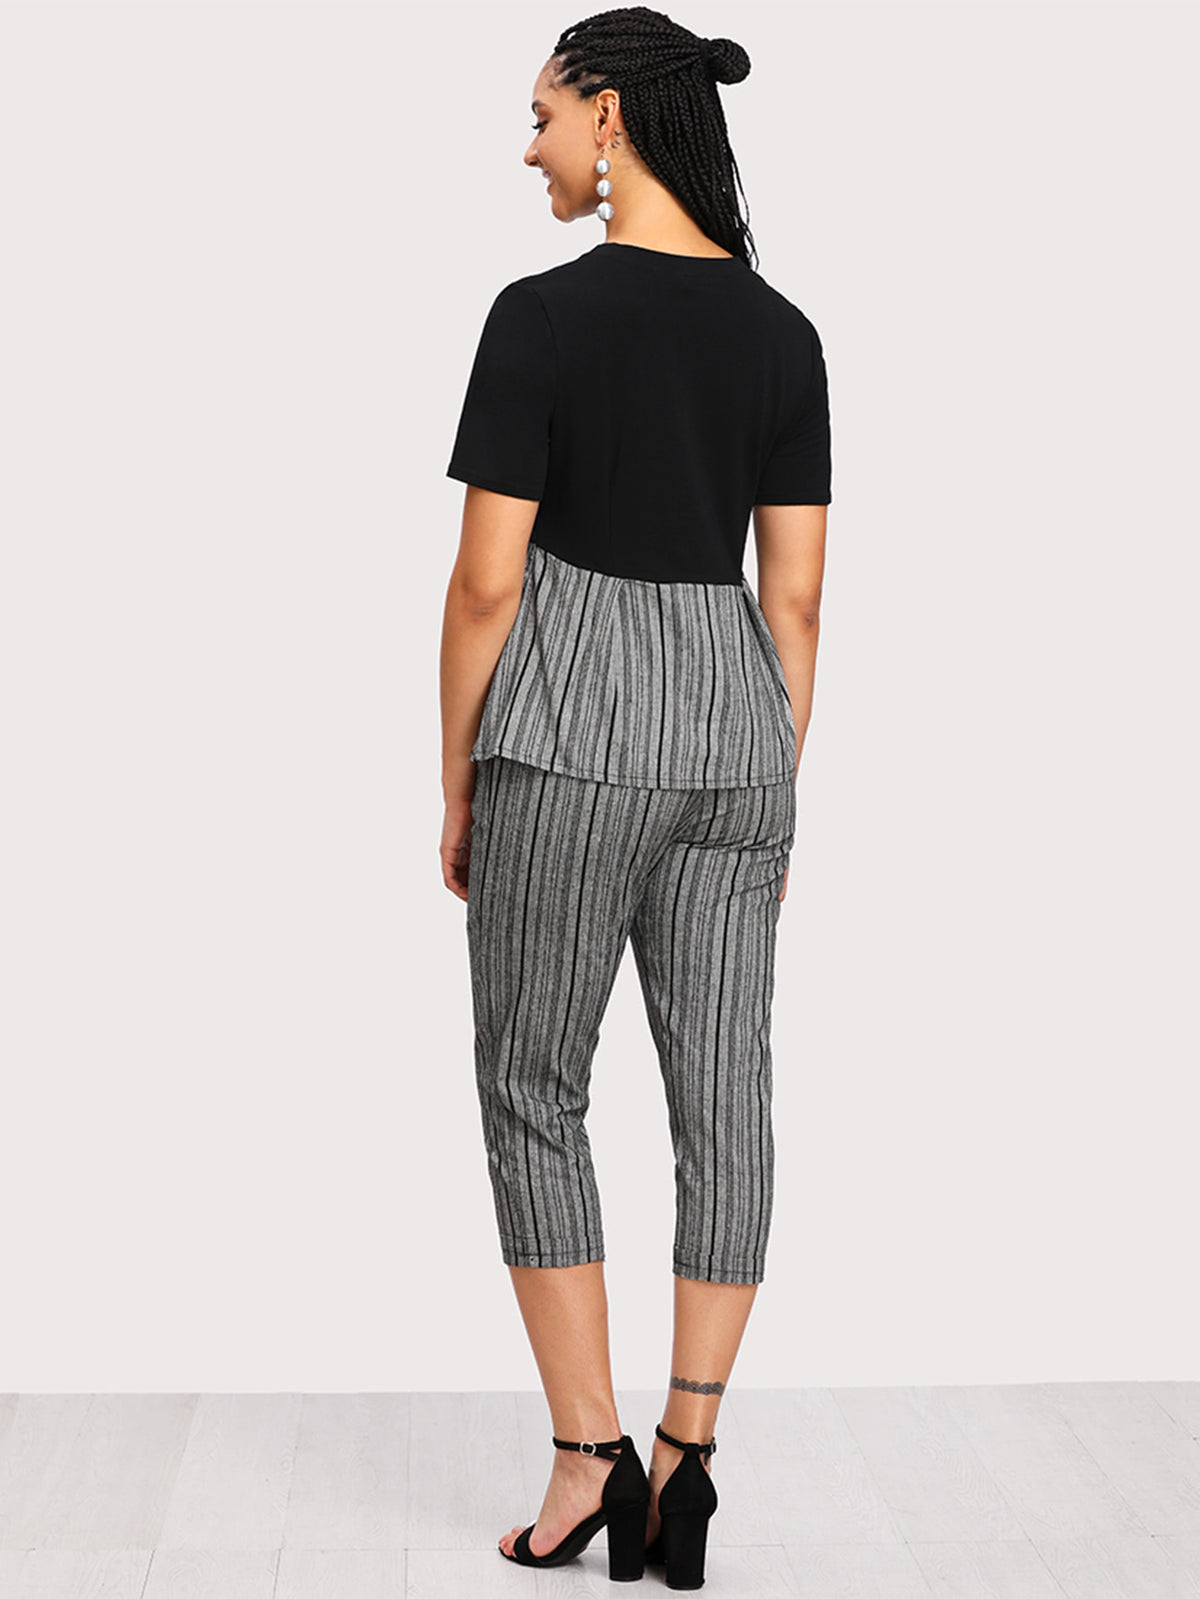 Contrast Striped Hem Top With Cuffed Pants